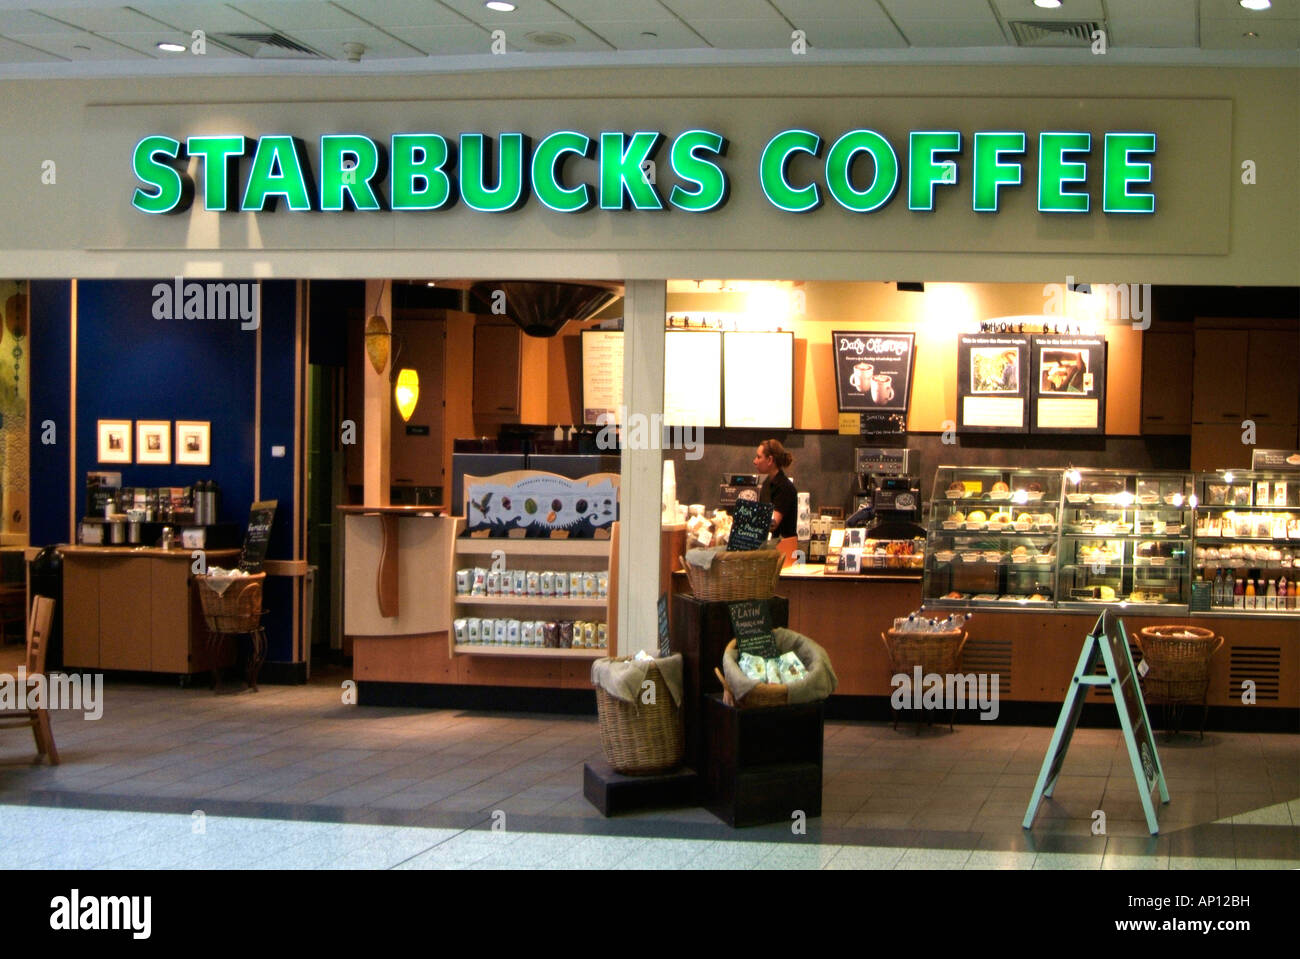 starbucks coffee caf fast food outlet table chair self service rest stock photo 15640036 alamy. Black Bedroom Furniture Sets. Home Design Ideas